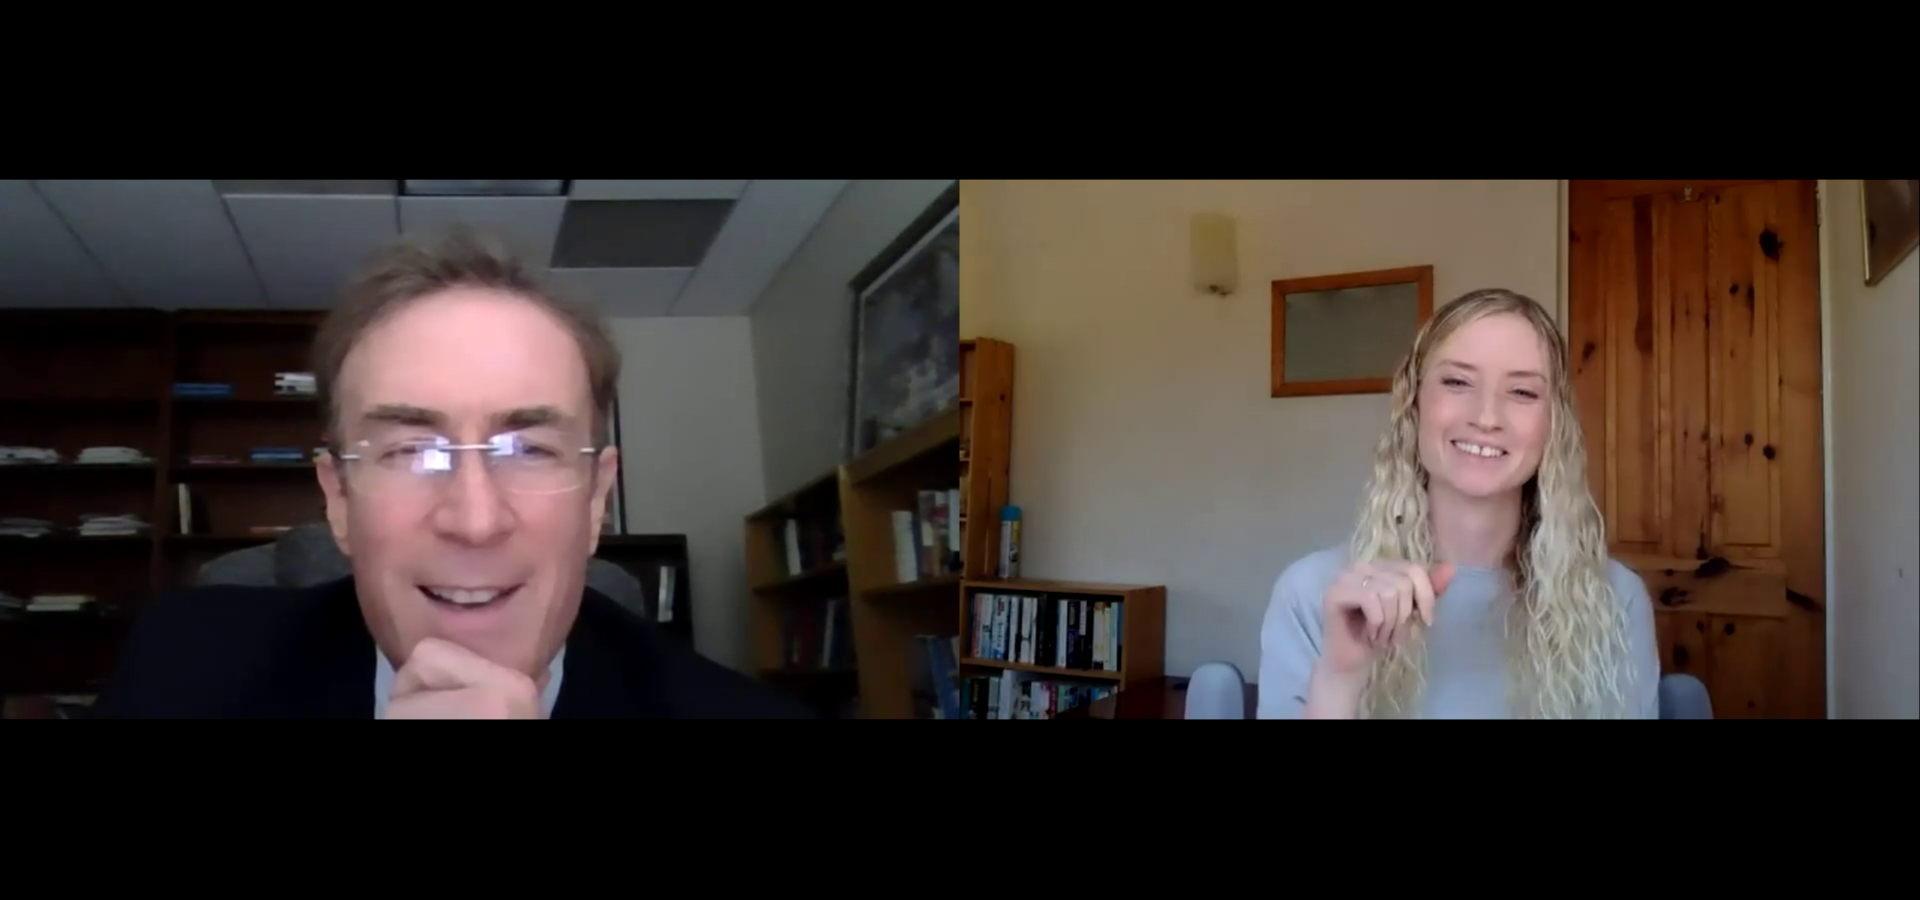 Image for McCain Virtual Conference 2021, Day 5 - Dr. Ed Barrett, Dr. Helen Frowe - The Ethics of Grey Zone Operations